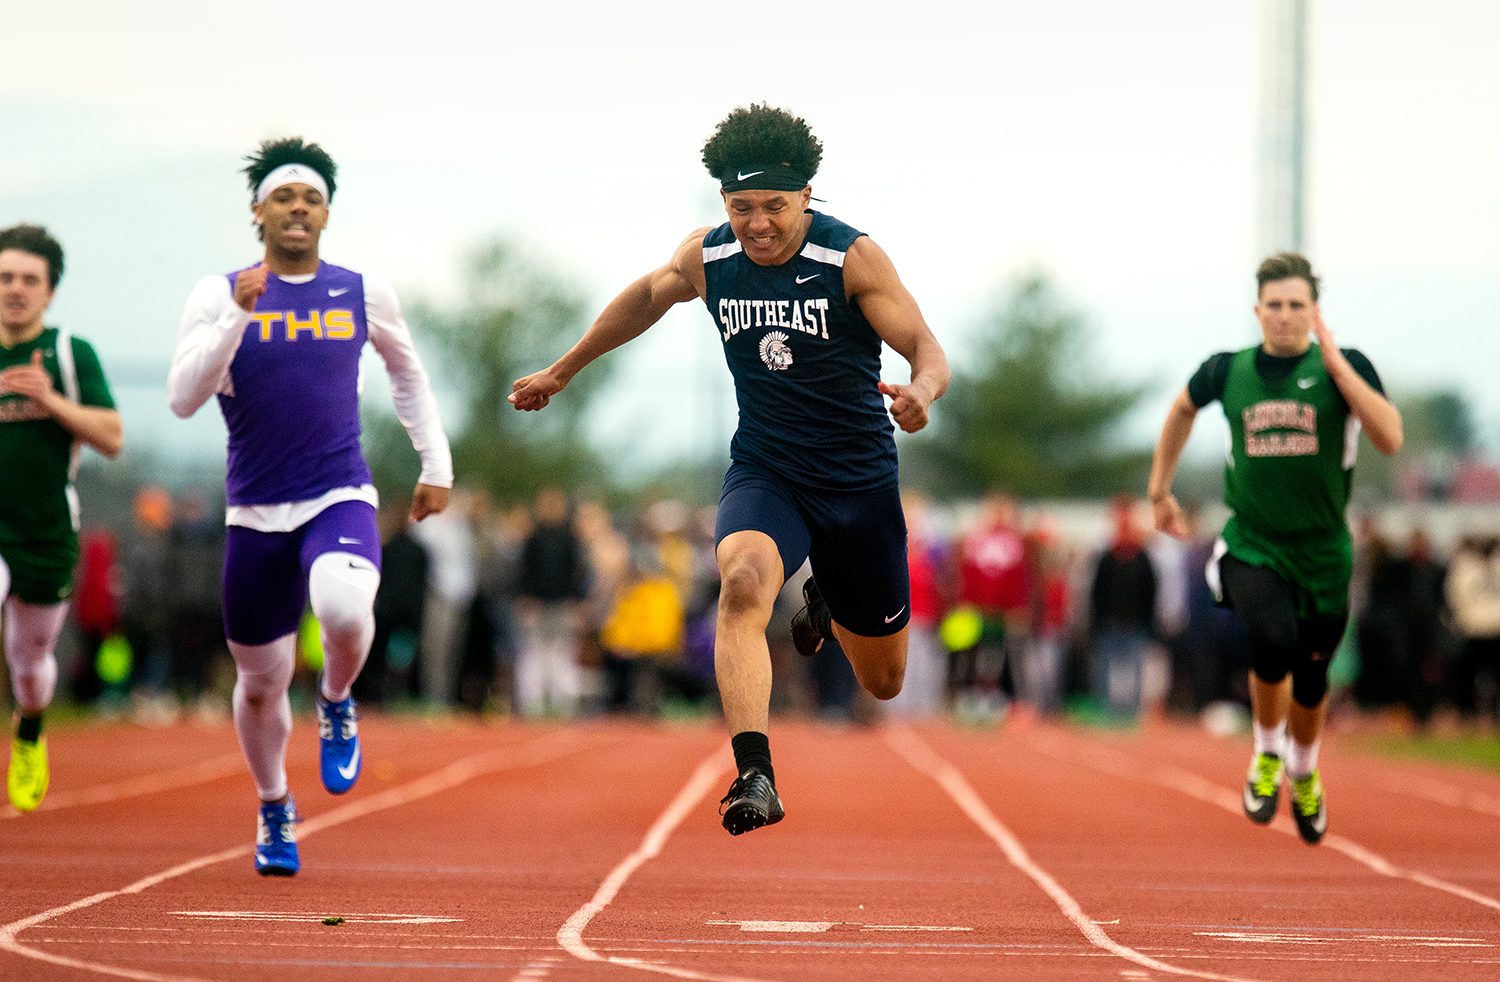 Southeast's Deon Fairlee wins the 100 meter dash and sets a personal record during the 2019 Titan Co-Ed Invitational, 2019 at Glenwood High School Thursday, April 18, 2019. [Ted Schurter/The State Journal-Register]